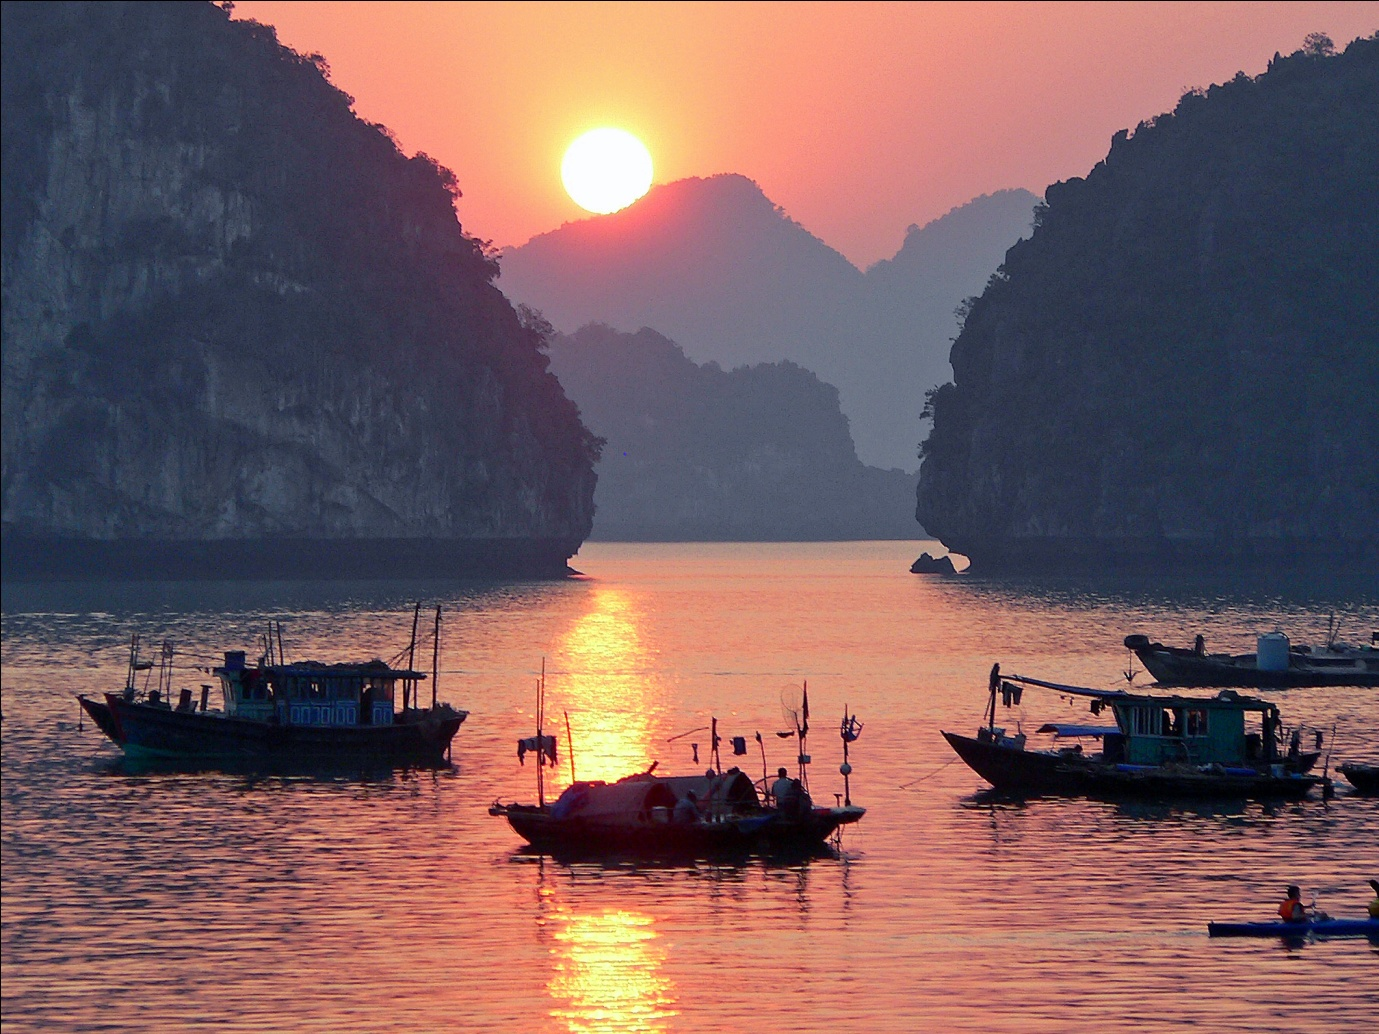 Impressive sunrise on Halong Bay